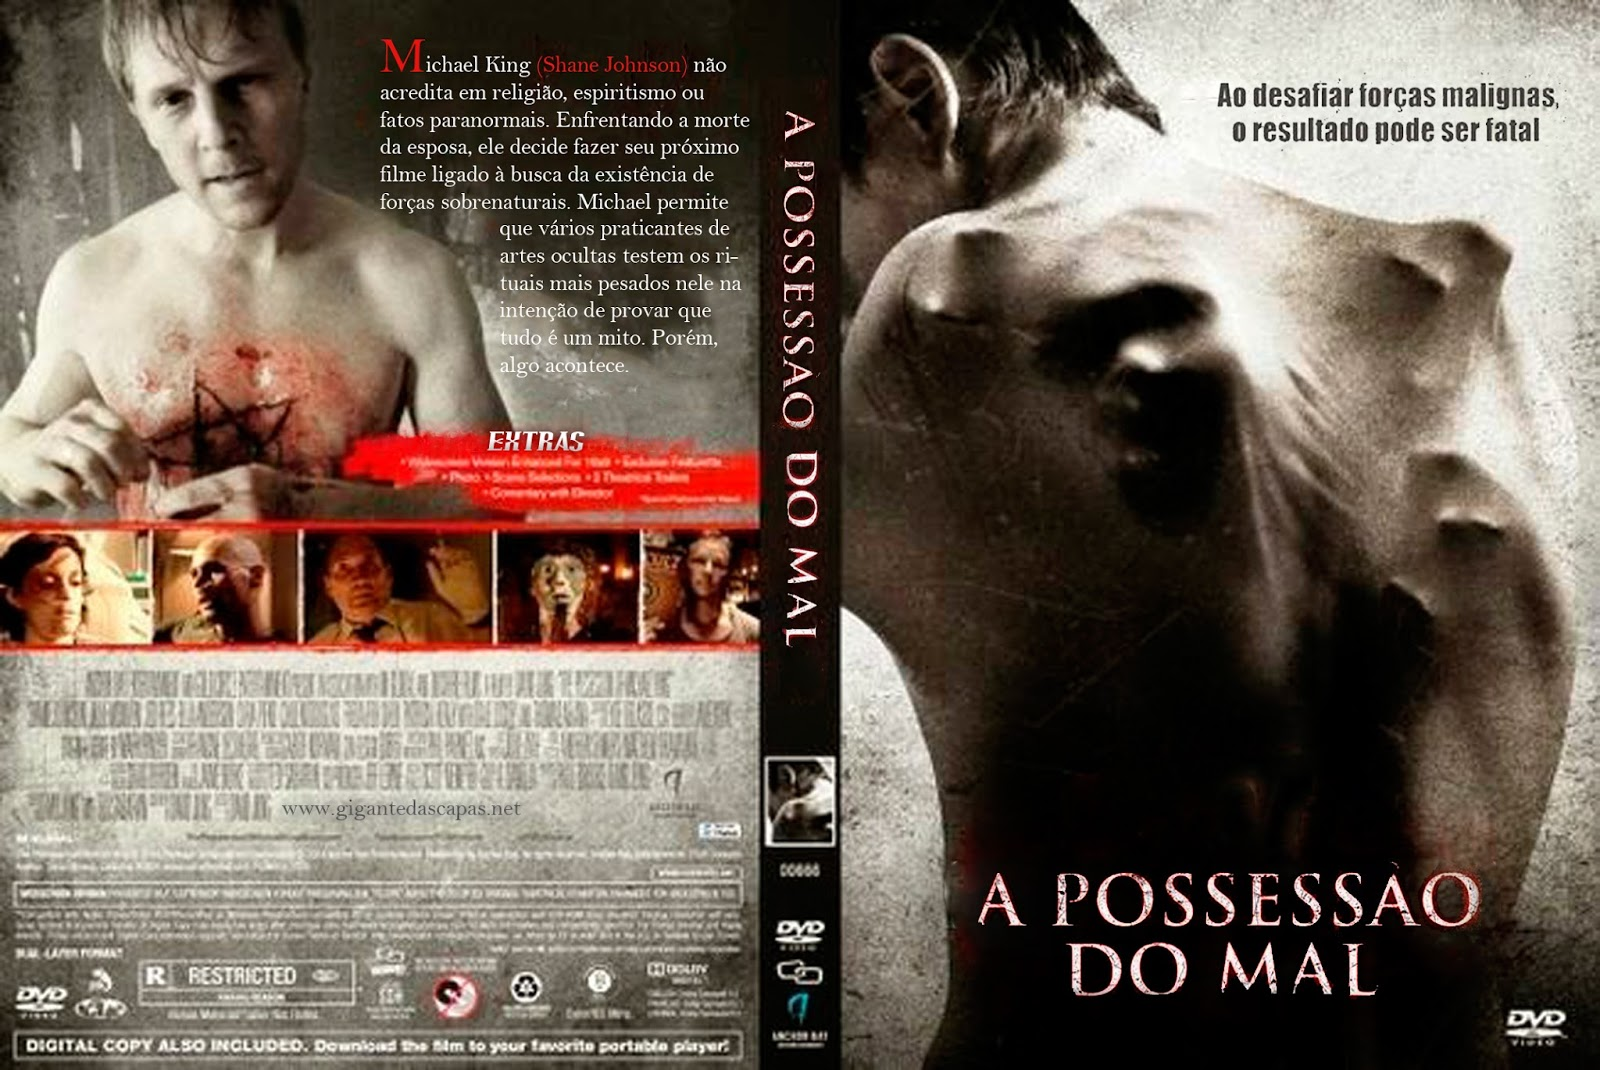 Download A Possessão do Mal BDRip XviD Dual Áudio A 2BPossess 25C3 25A3o 2Bdo 2BMal